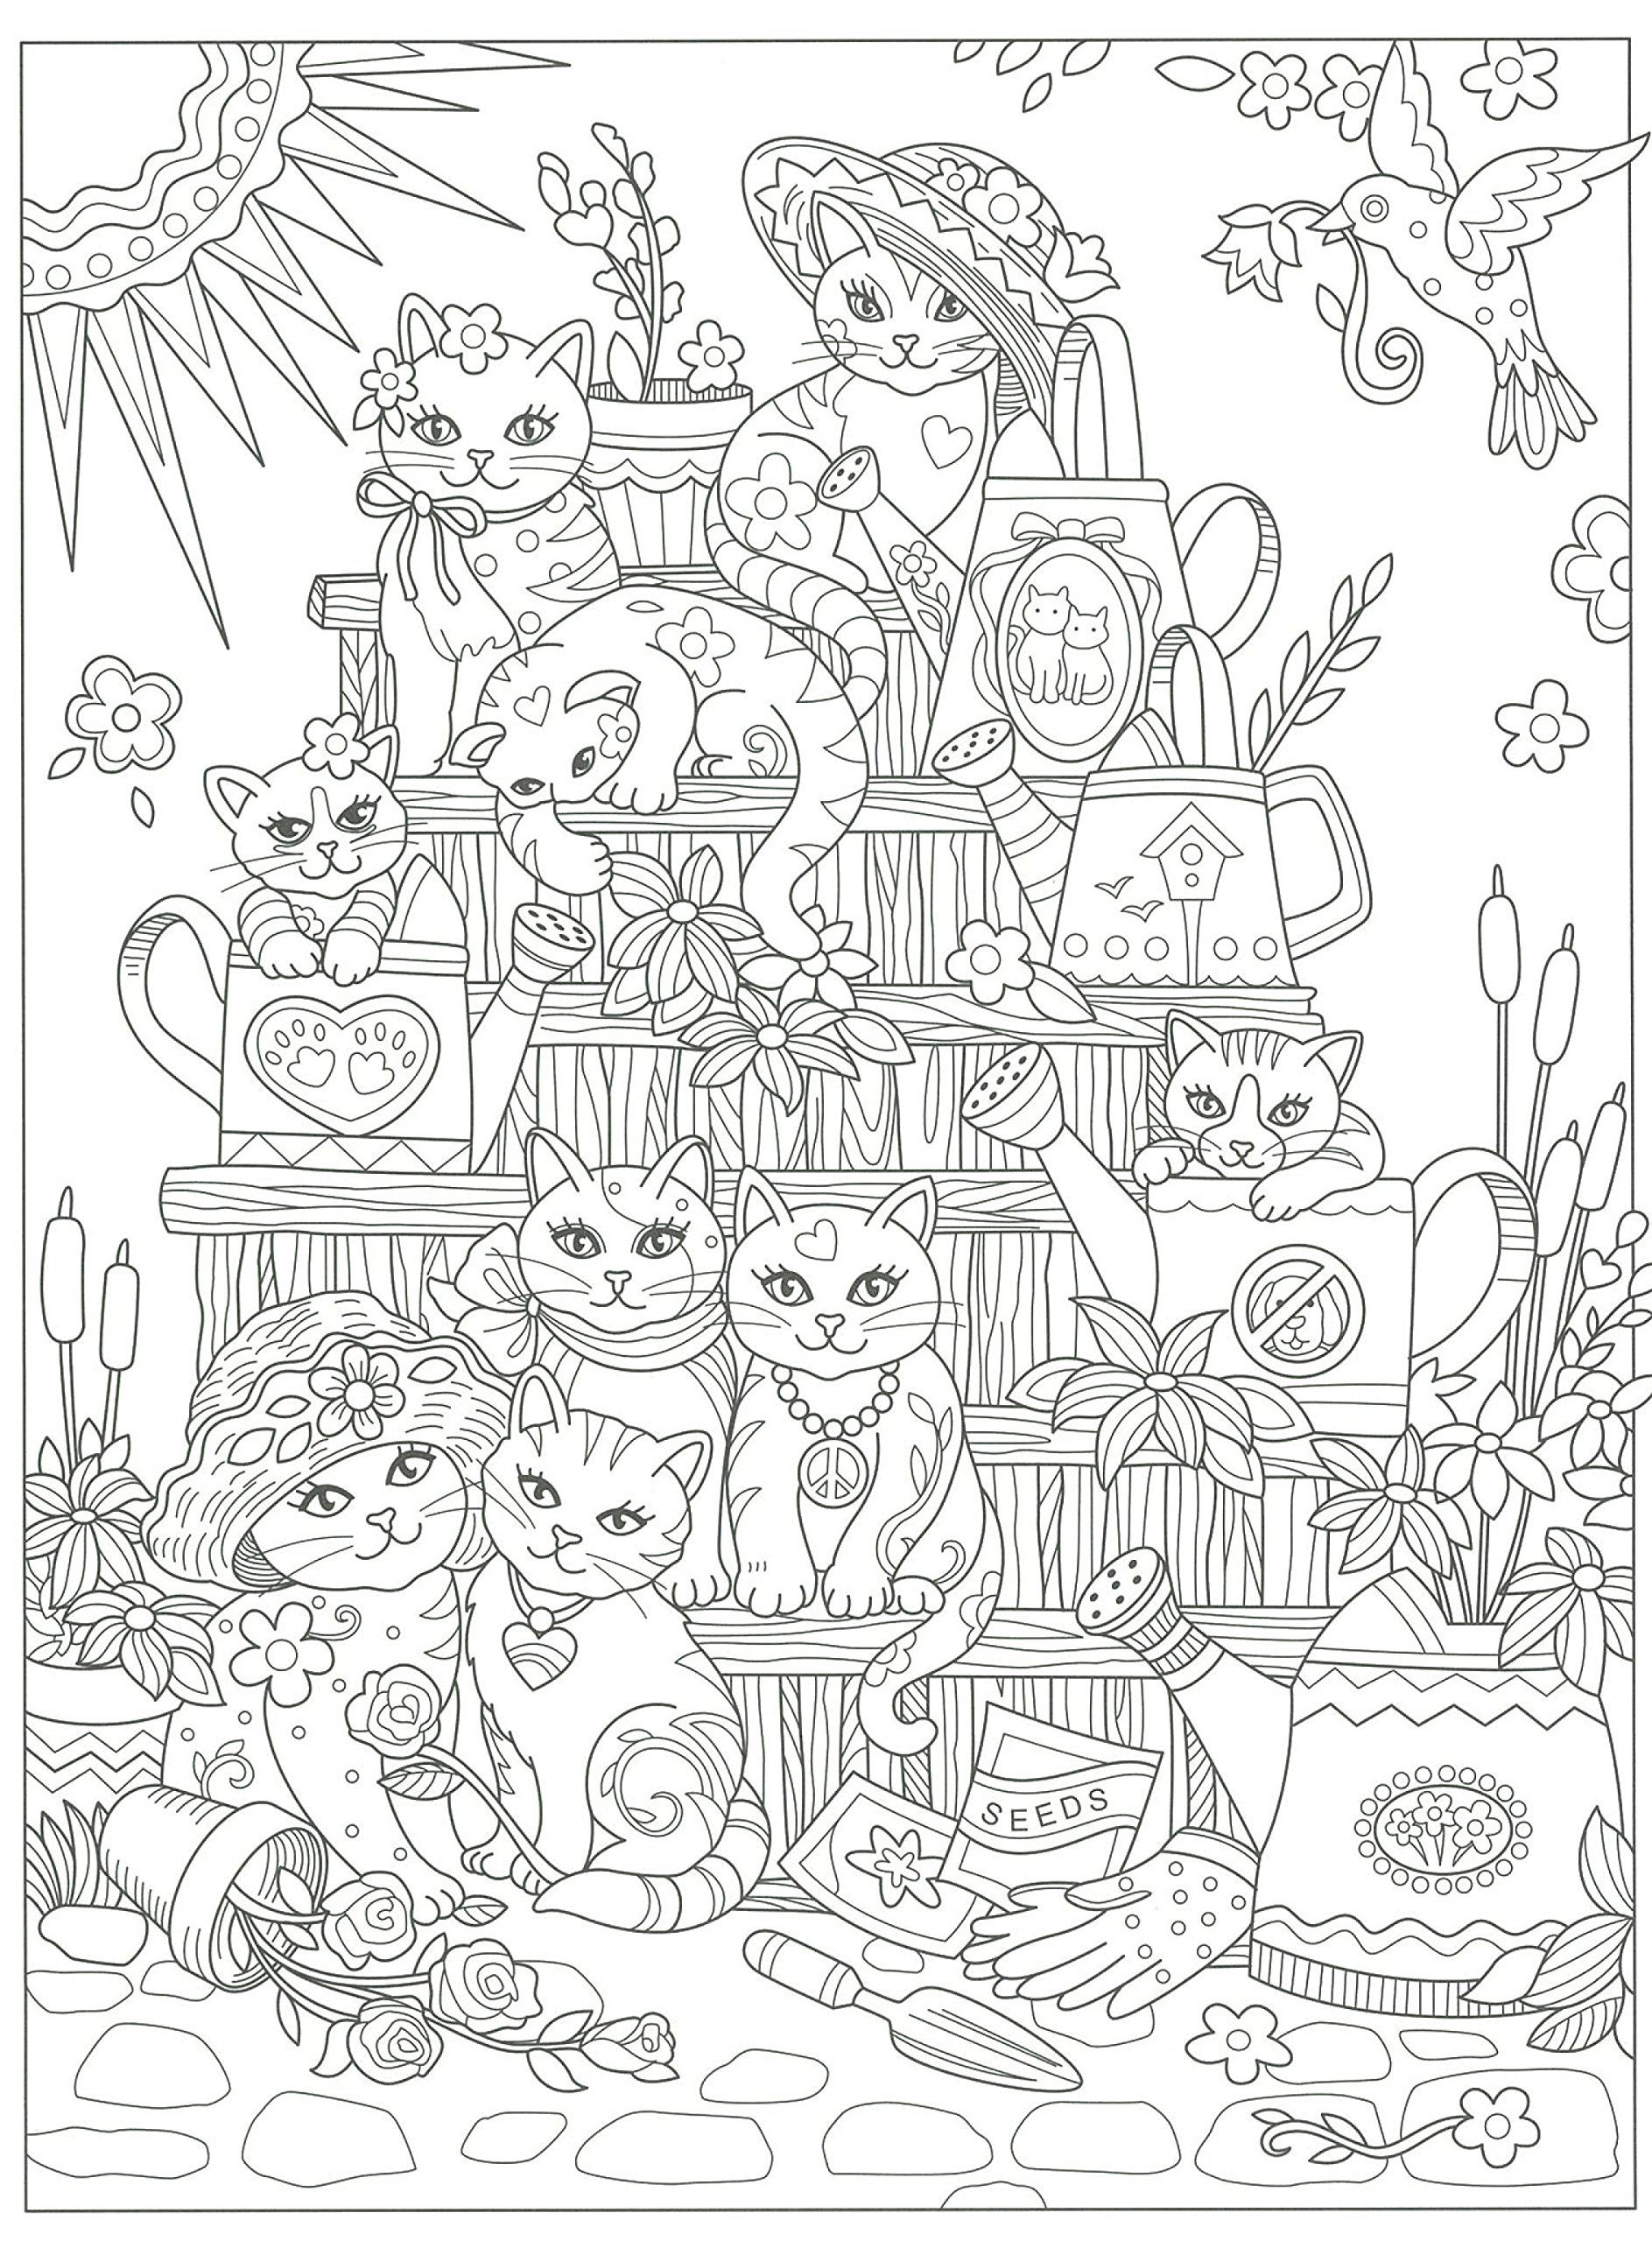 Cats galore coloring page Coloring Pages Pinterest